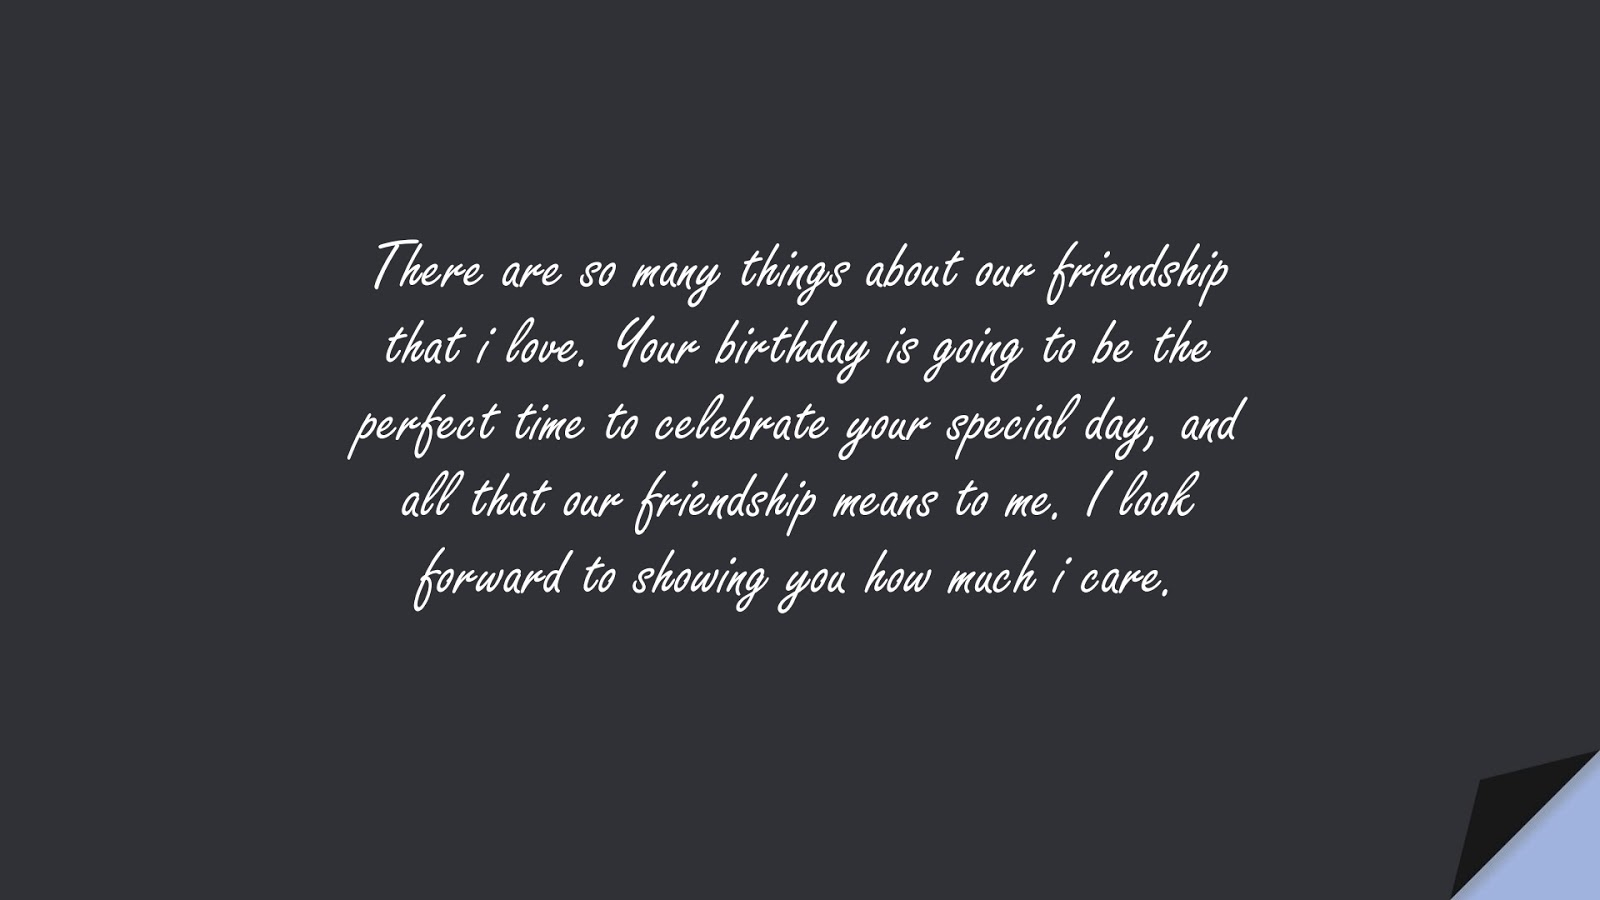 There are so many things about our friendship that i love. Your birthday is going to be the perfect time to celebrate your special day, and all that our friendship means to me. I look forward to showing you how much i care.FALSE